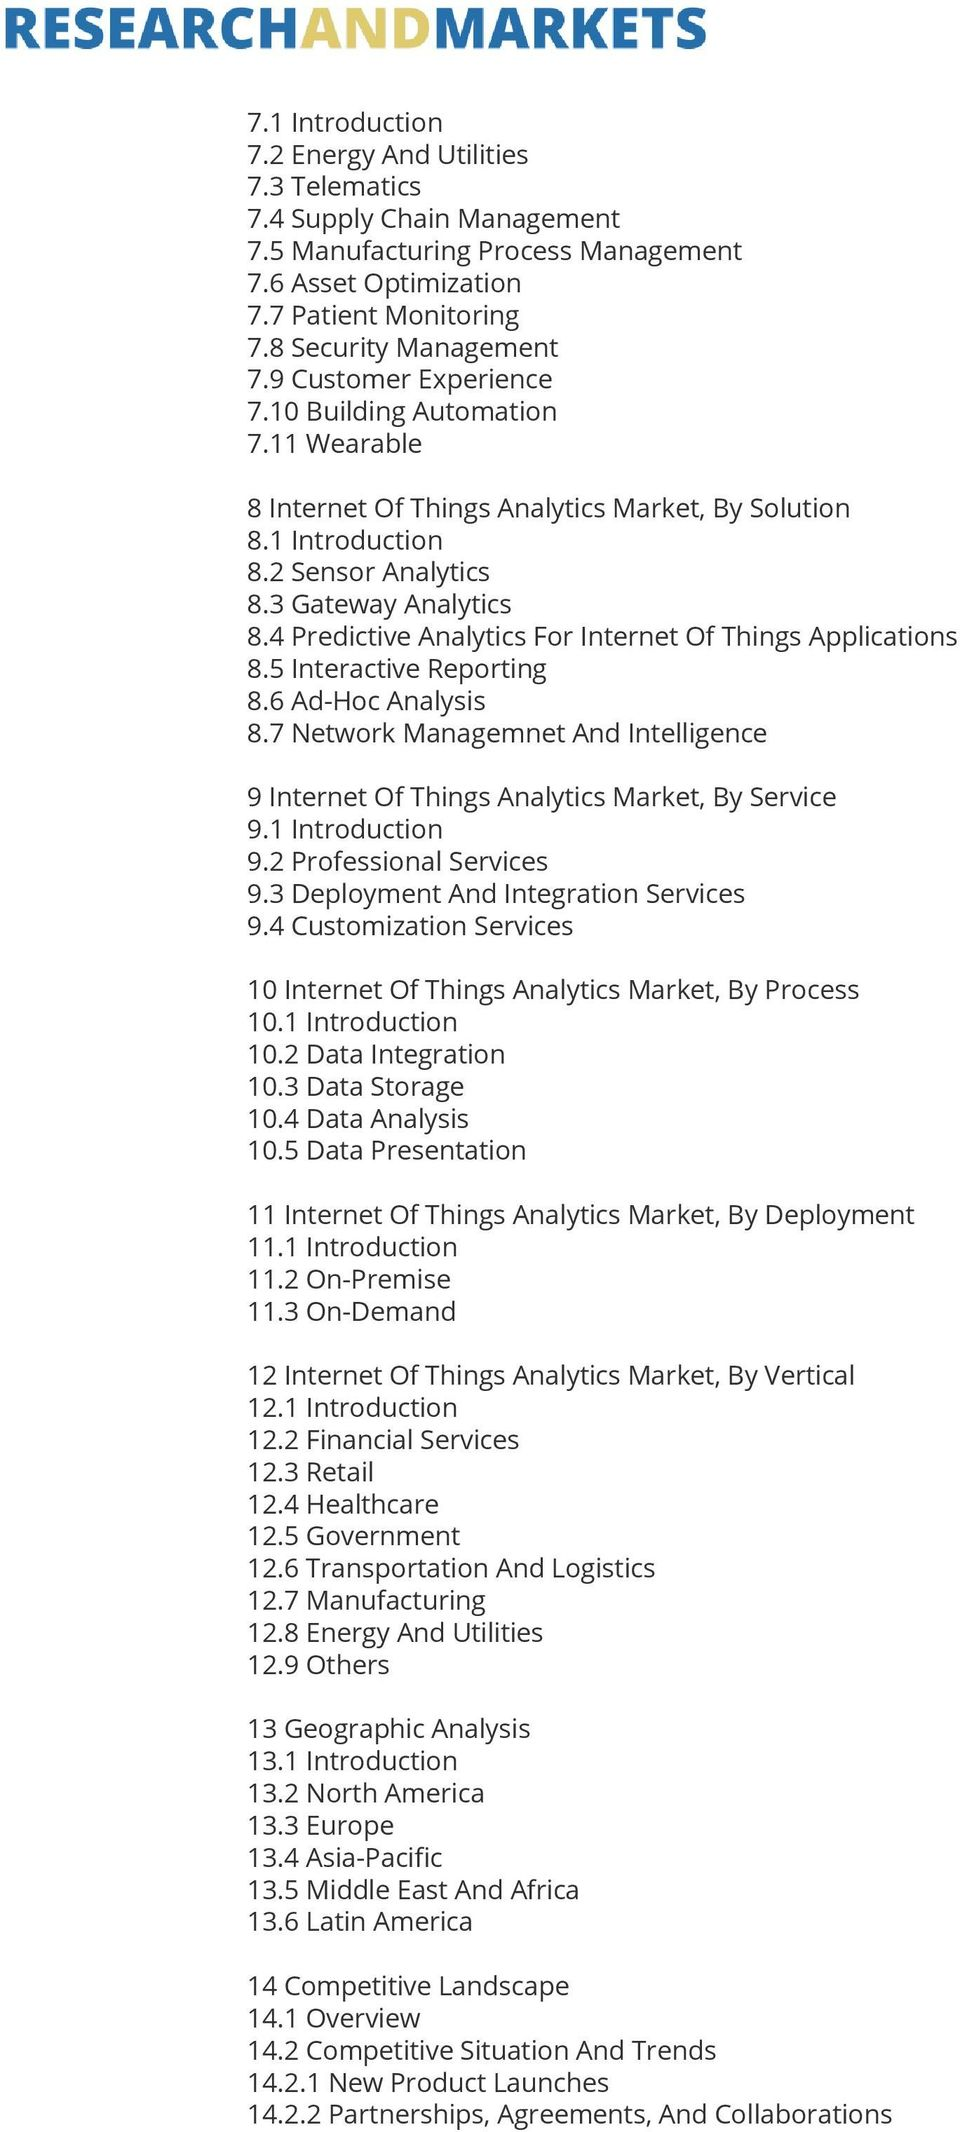 4 Predictive Analytics For Internet Of Things Applications 8.5 Interactive Reporting 8.6 Ad-Hoc Analysis 8.7 Network Managemnet And Intelligence 9 Internet Of Things Analytics Market, By Service 9.